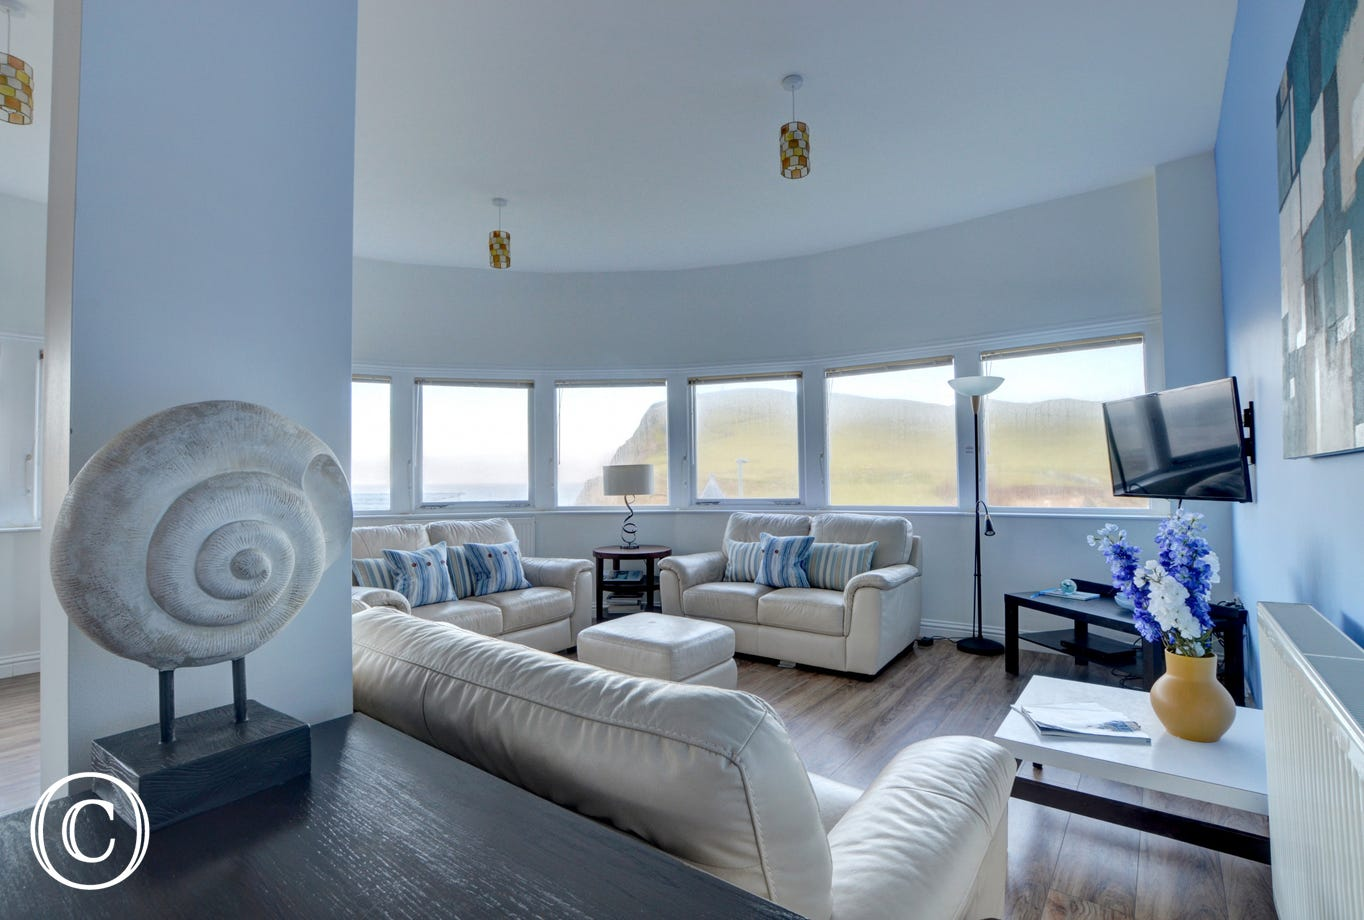 Comfortable cream leather sofas in the sitting area and spectacular views